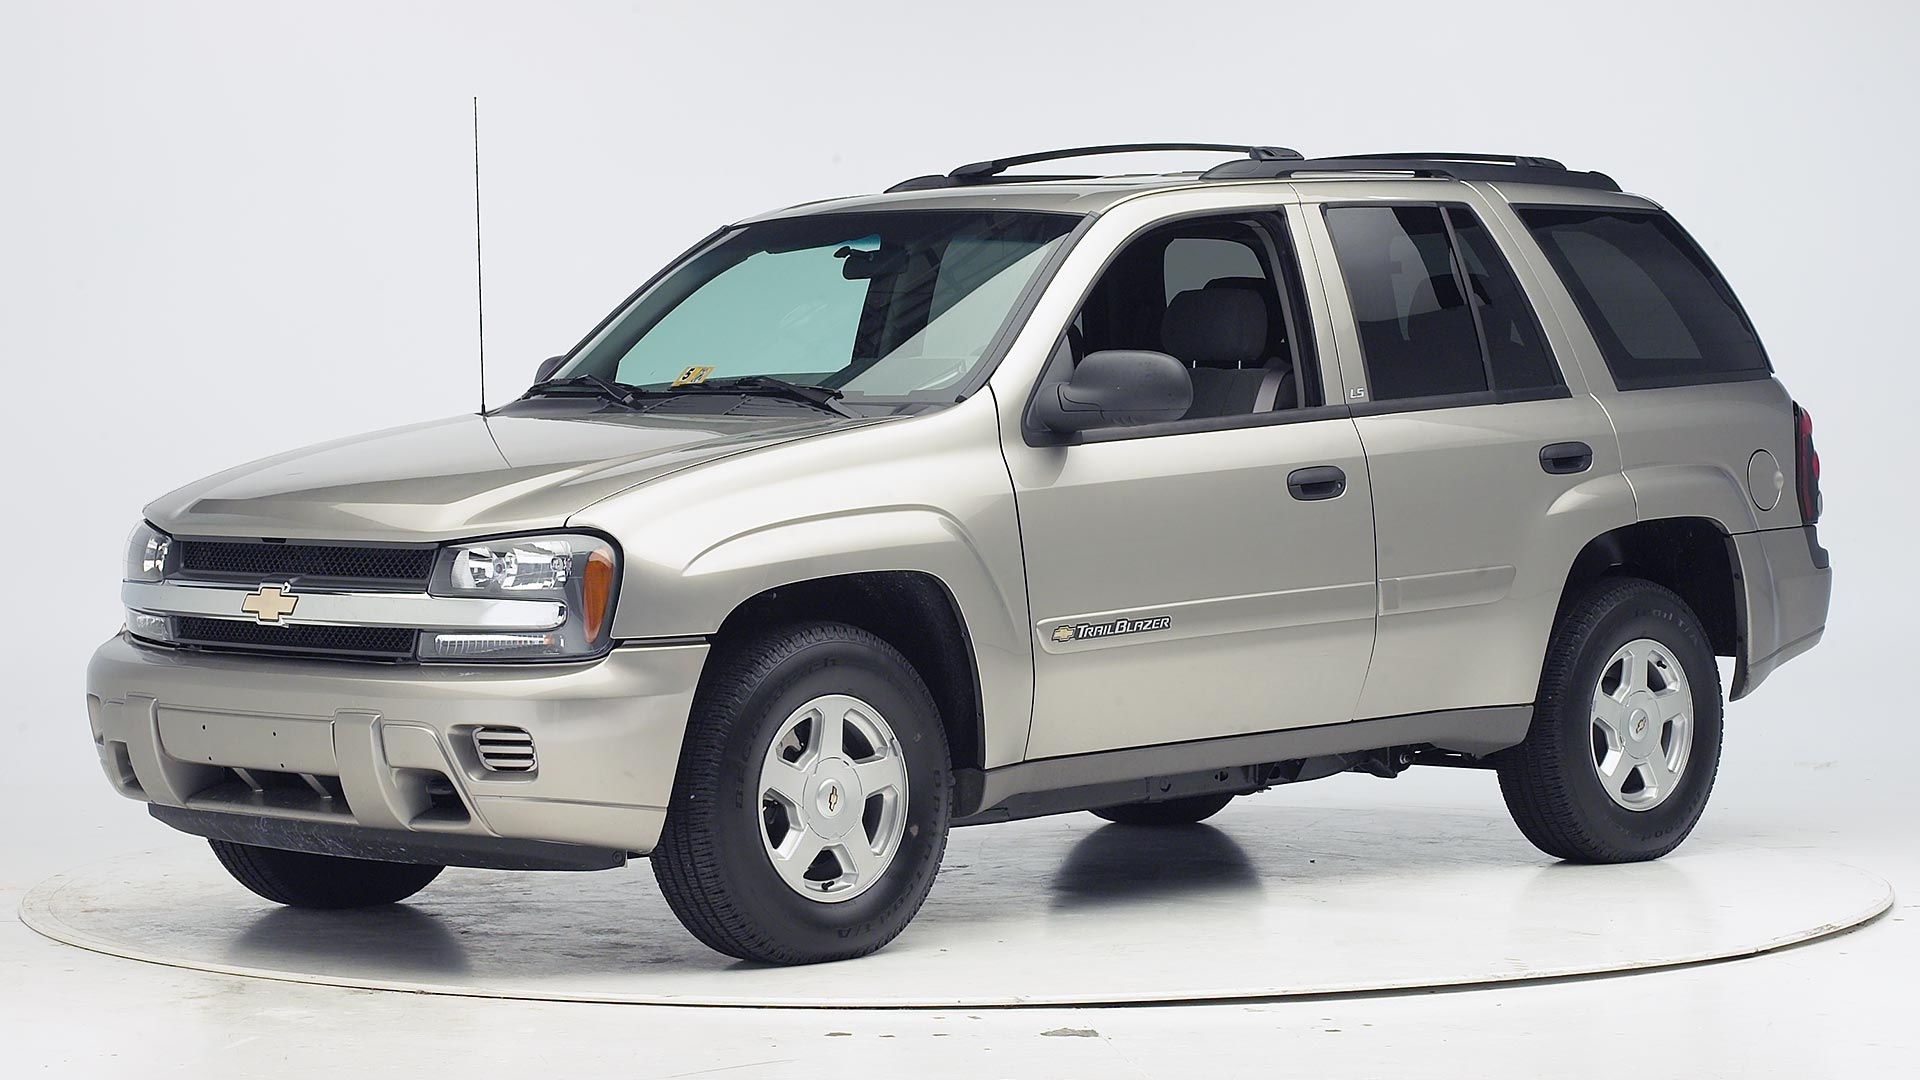 2004 Chevrolet TrailBlazer 4-door SUV